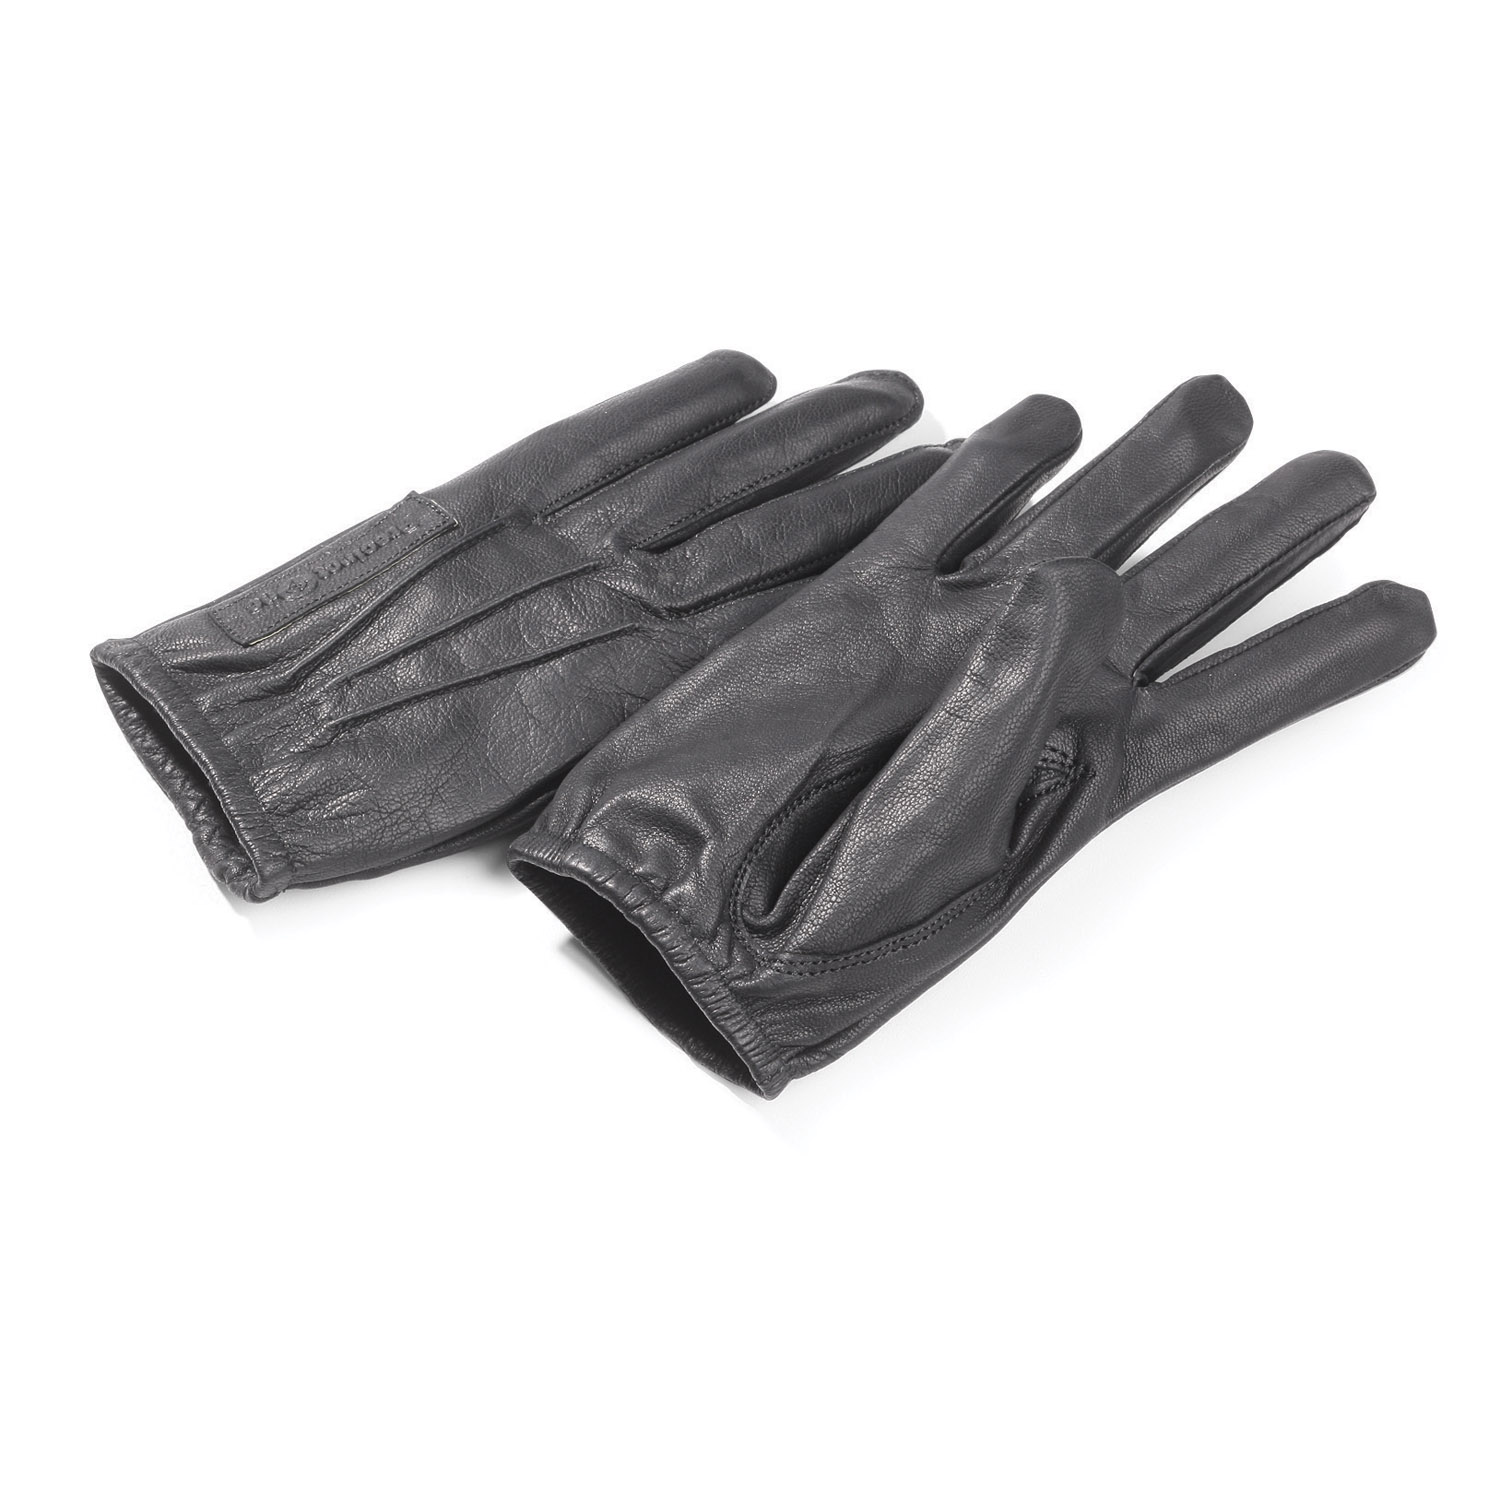 Black leather gloves meaning - Precinct One Men S Waterproof Leather Duty Gloves